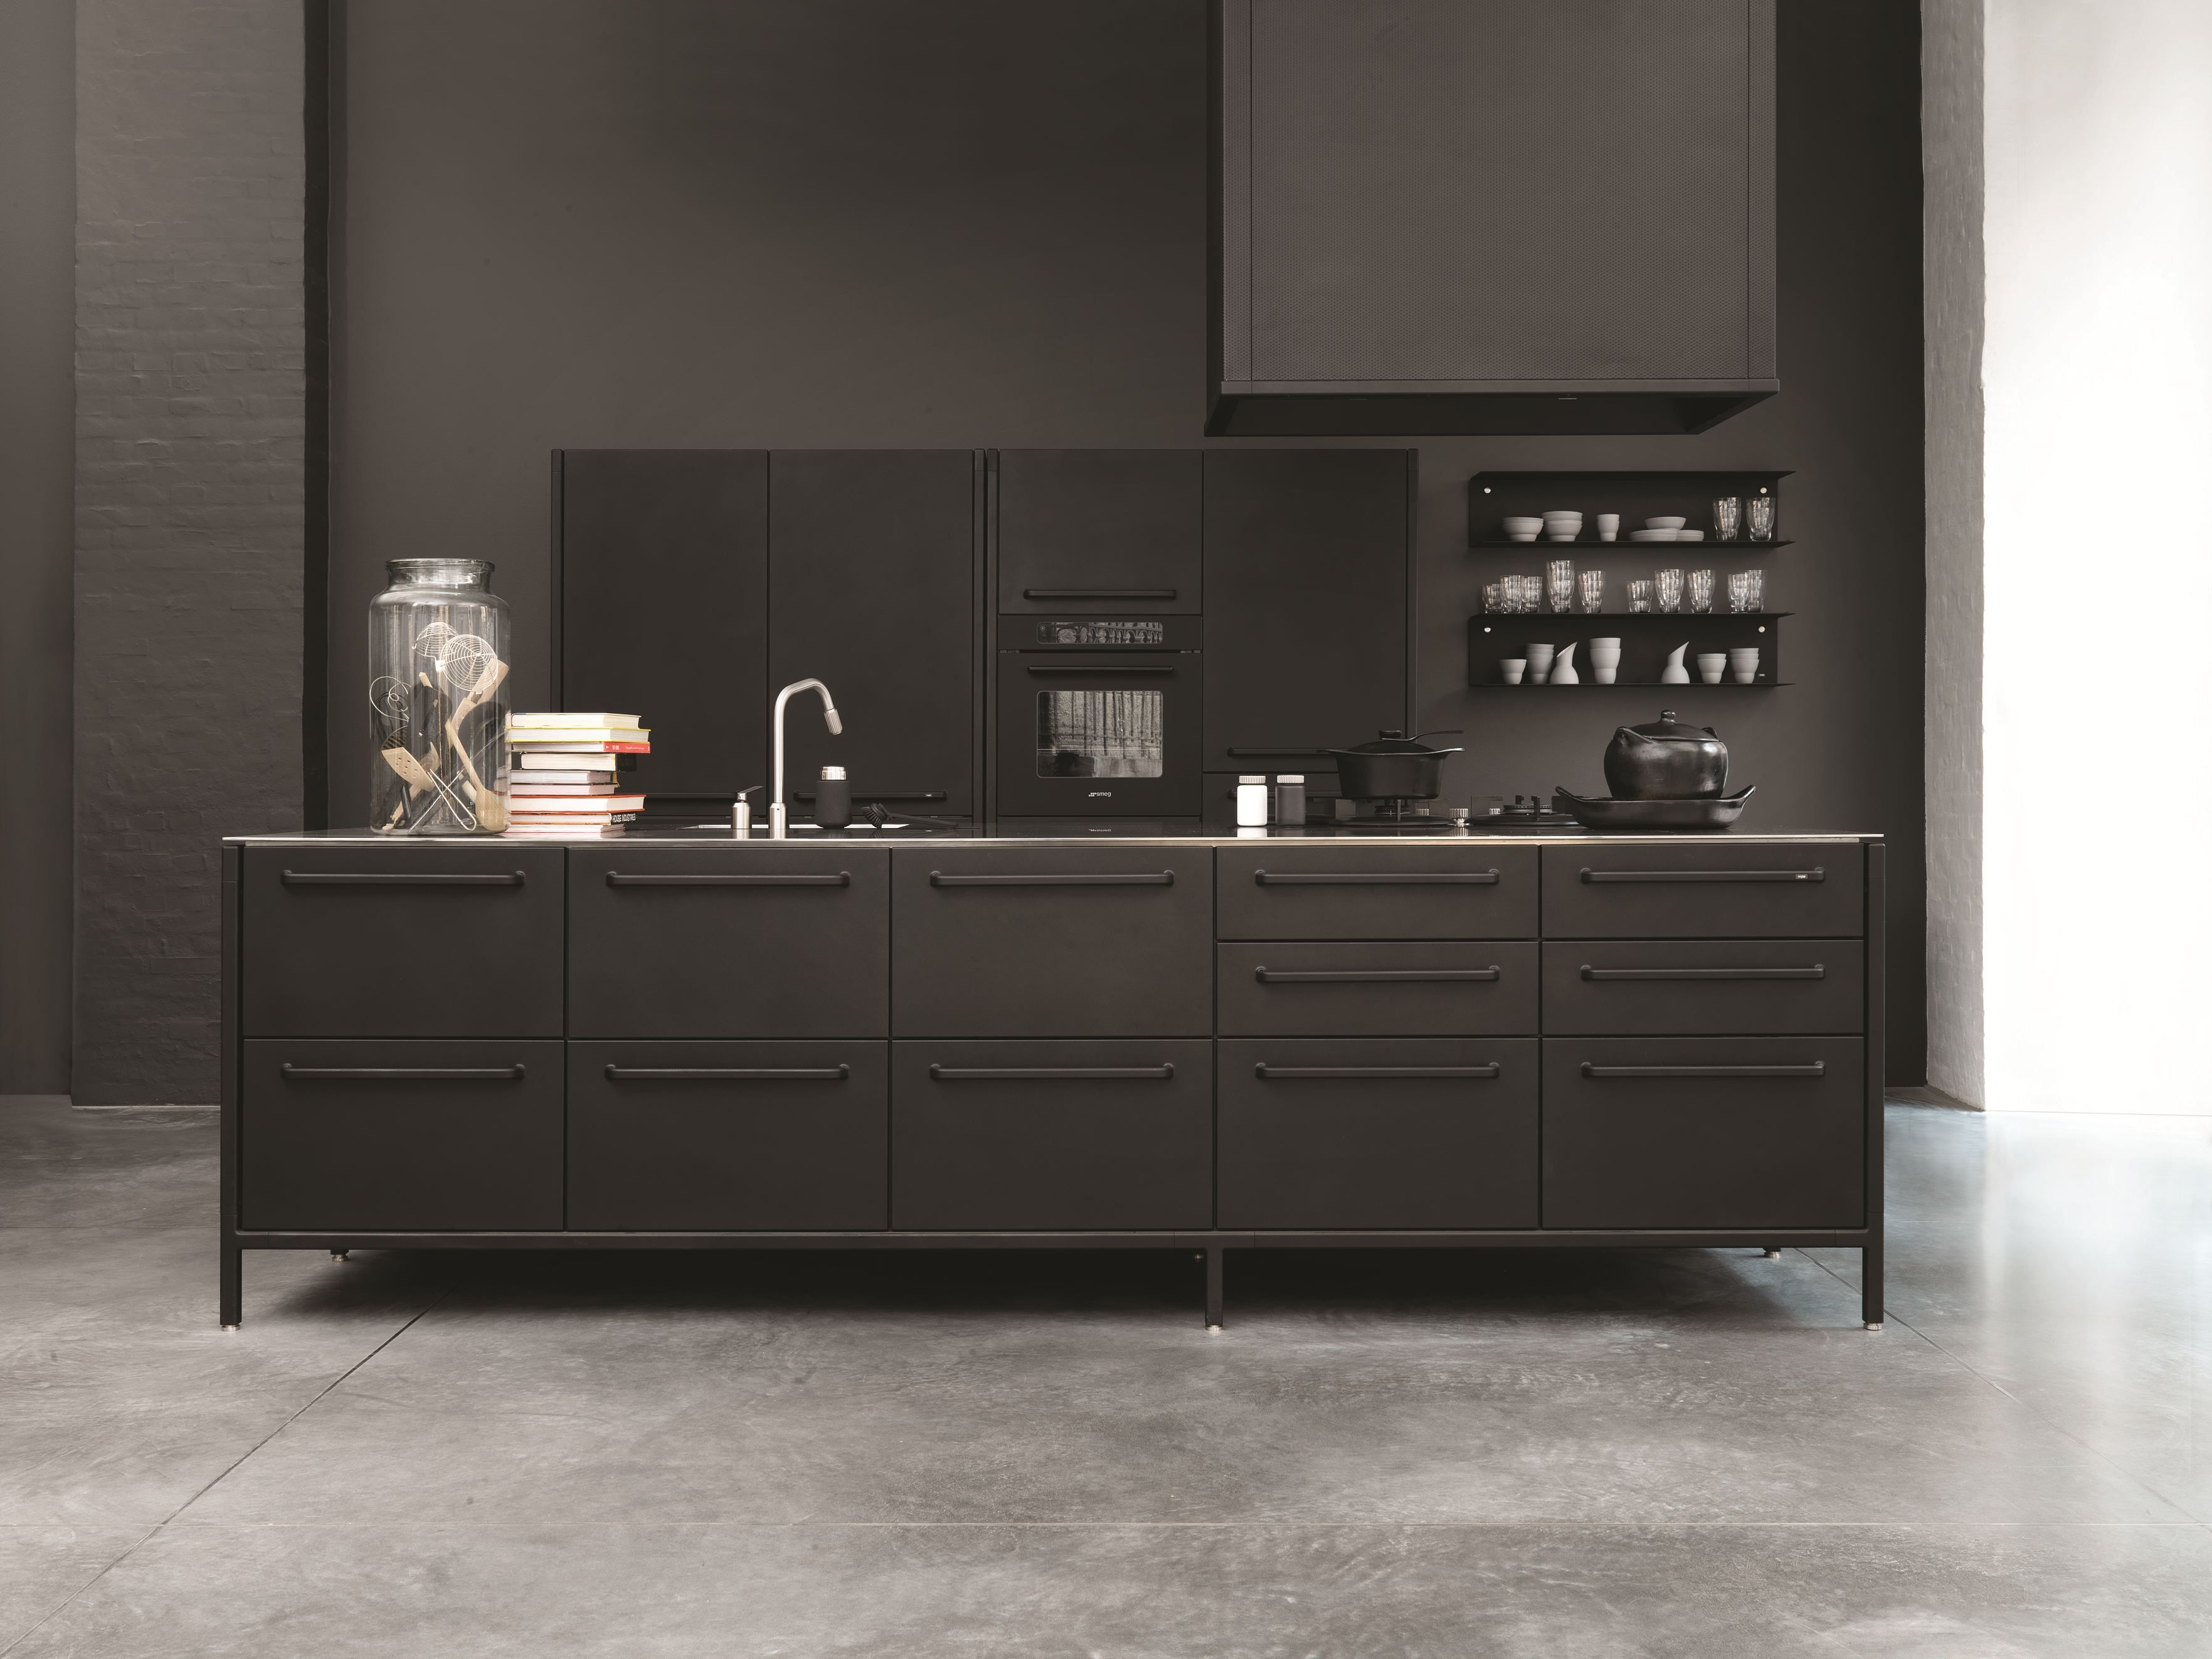 Awesome Stainless Steel #kitchen With Handles VIPP ISLAND MODULE By Vipp #black  #design Good Looking